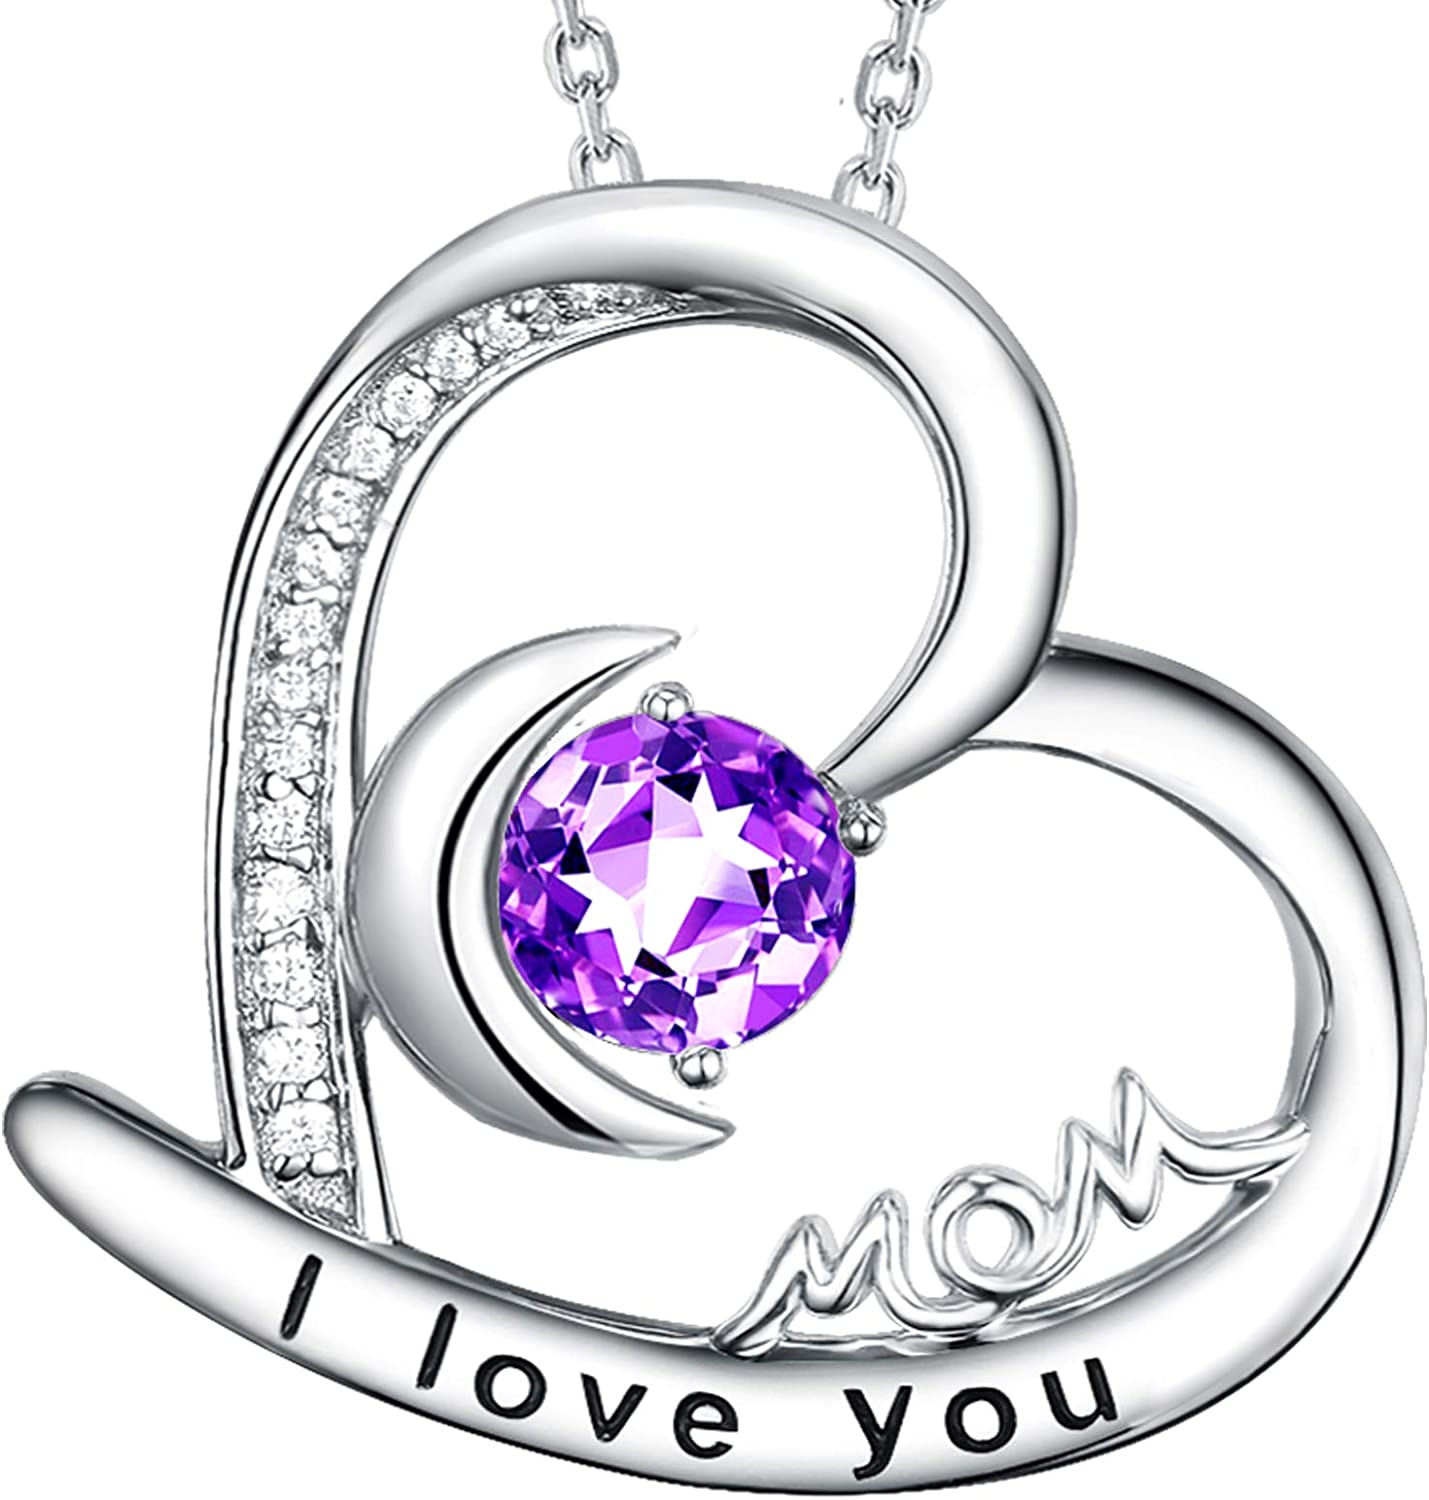 I Large special price !! Love You Mom Necklace Amethyst Jewelry M Simulated Diamond for Max 72% OFF